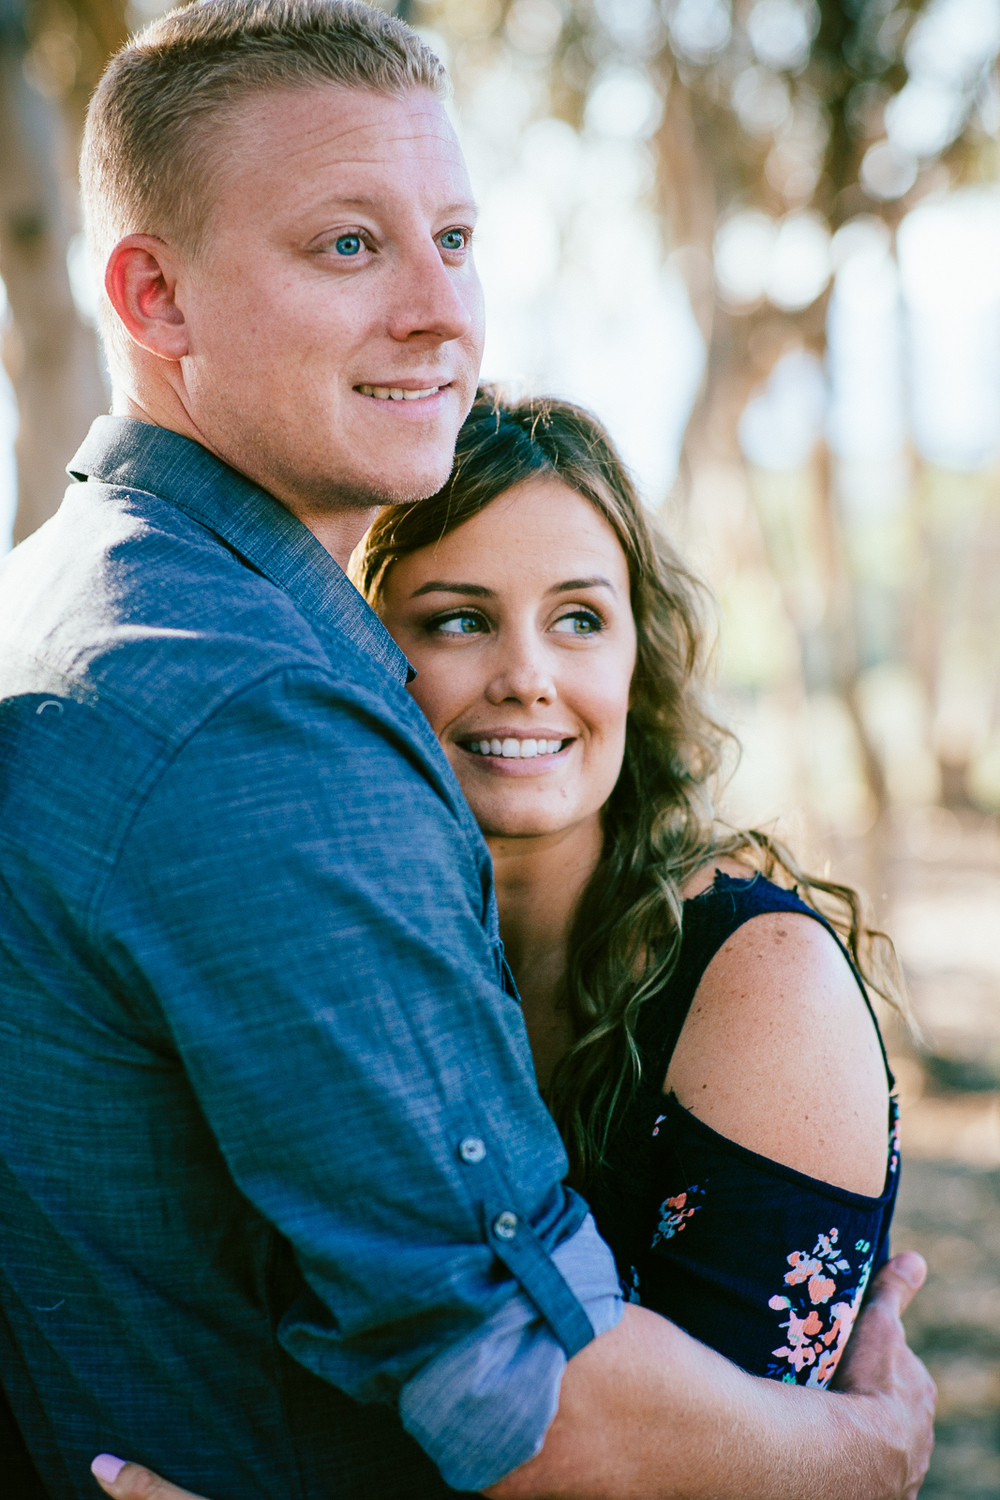 DANYELLE_&_ERIC_ENGAGEMENT_SESSION_SUNSET_CLIFFS_LEAF_WEDDING_PHOTOGRAPHY_2015IMG_2309.JPG